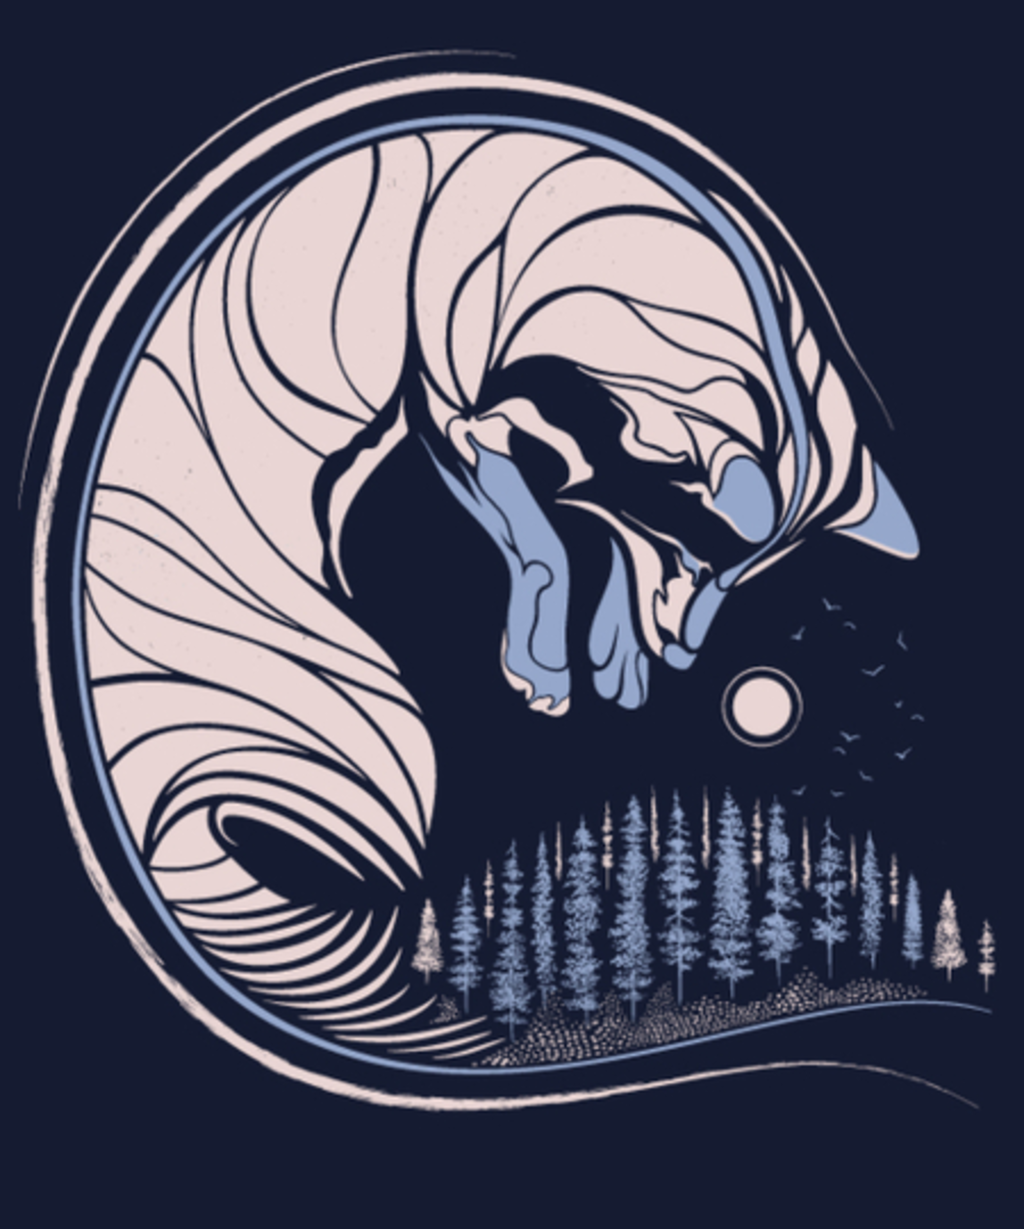 Qwertee: Chasing Its Tail